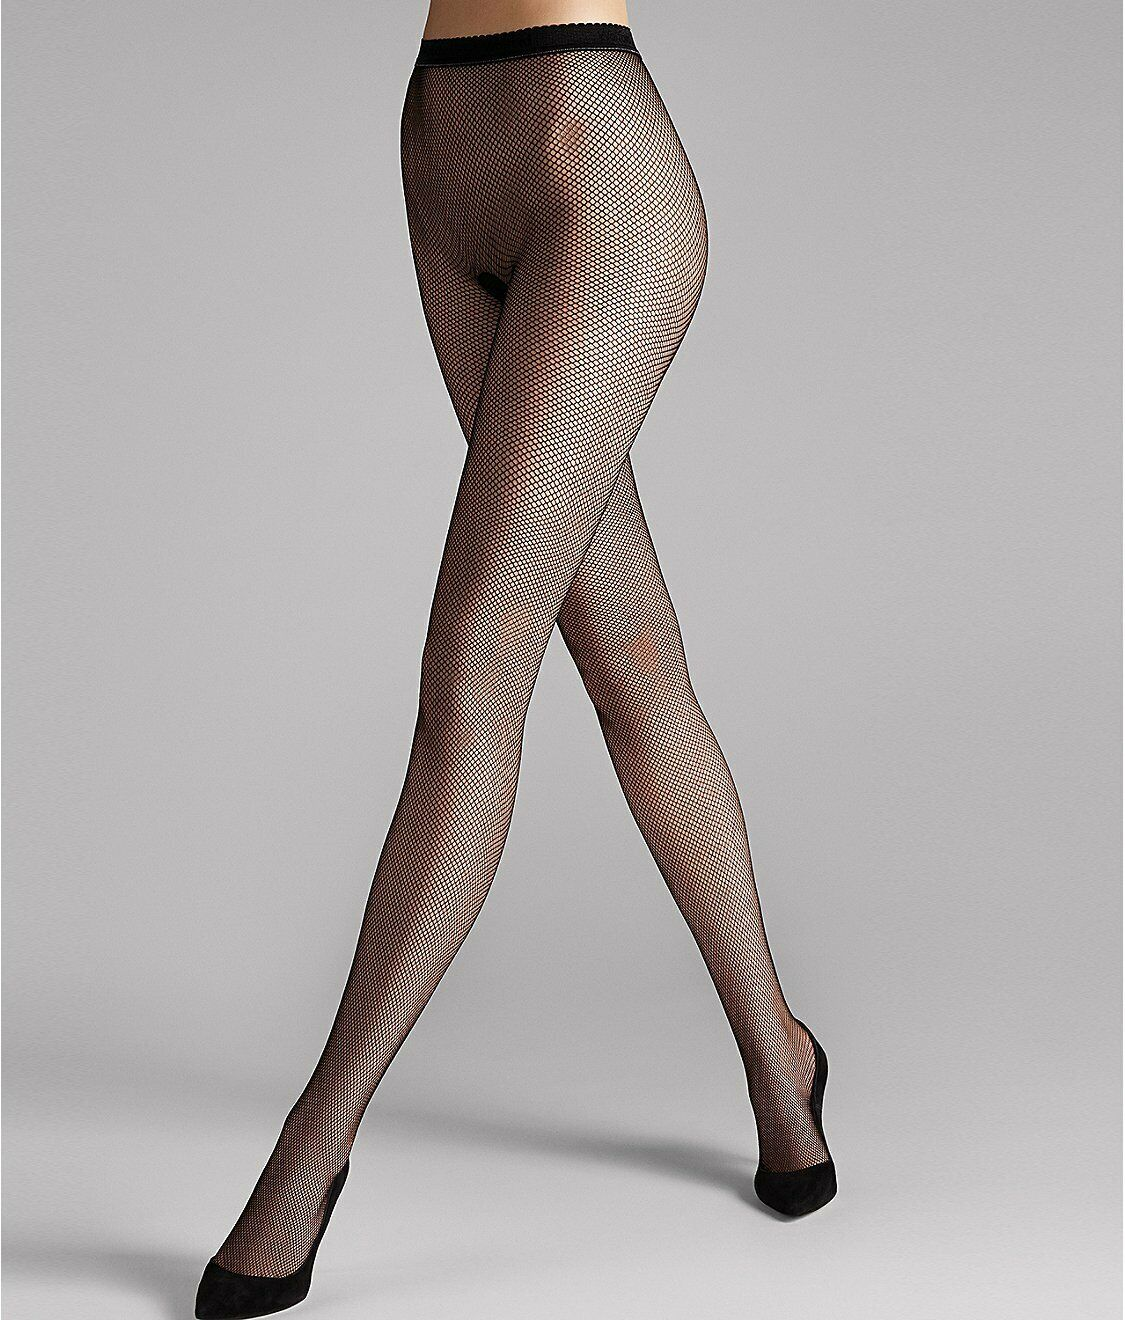 Wolford BLACK Twenties Fishnet Tights, US Medium